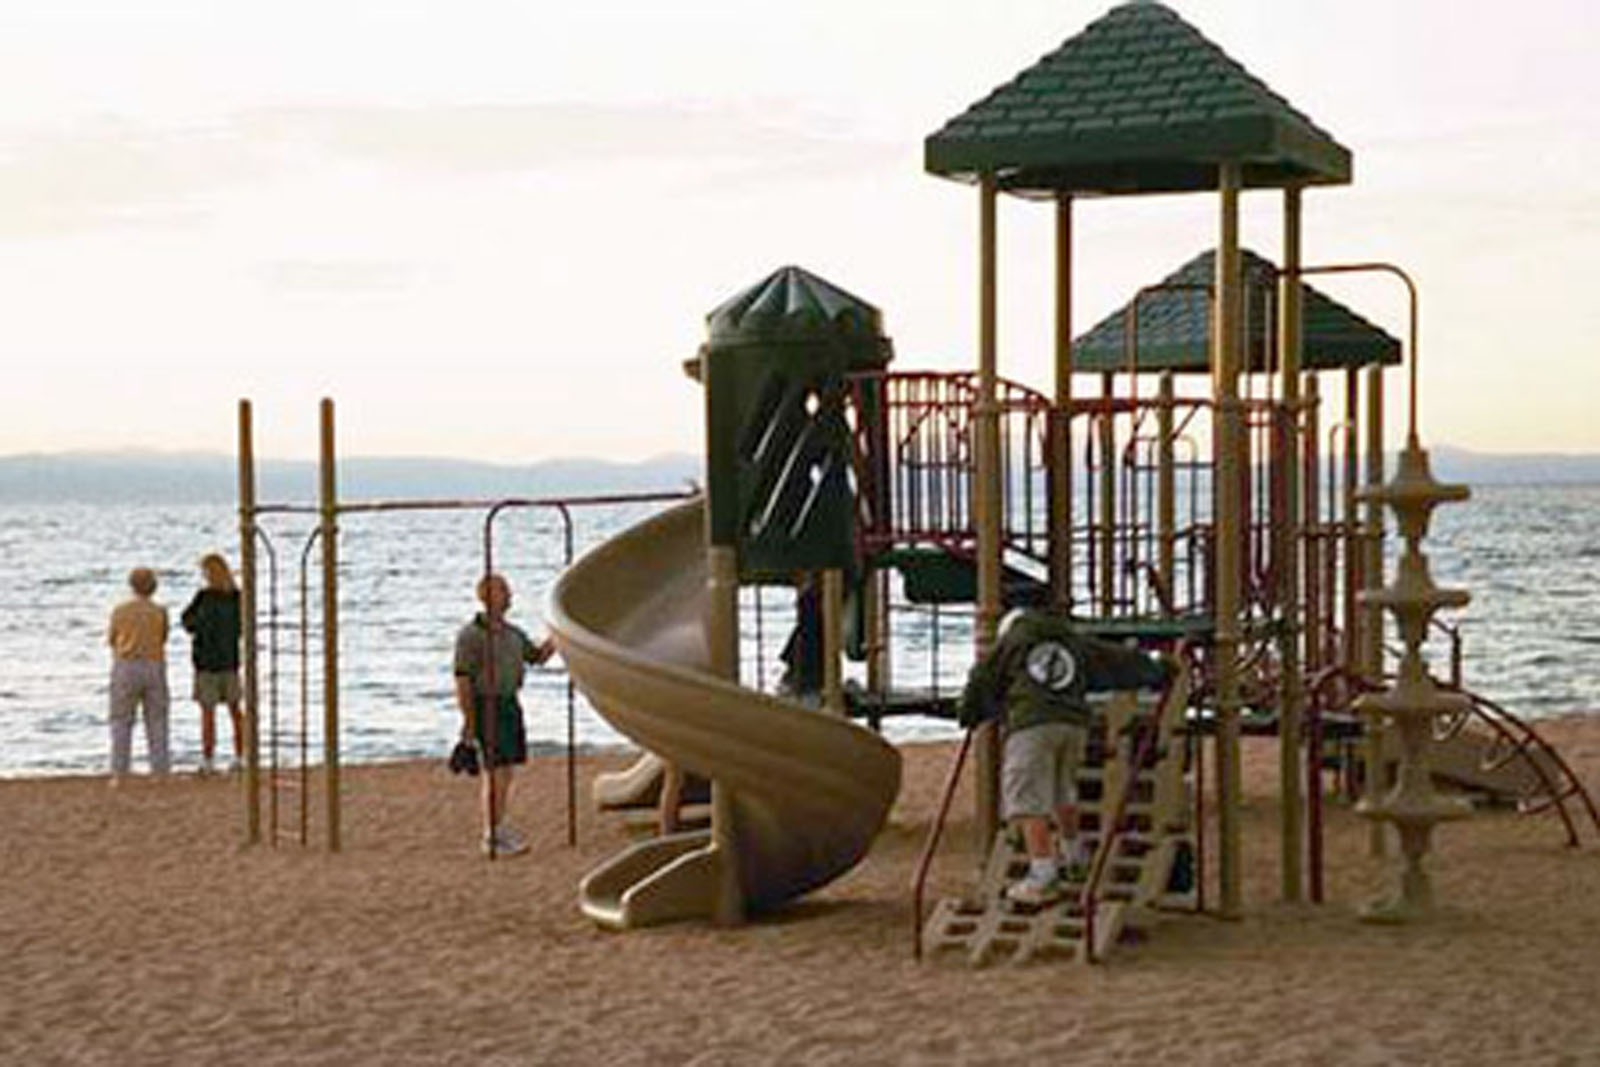 Beach playground at Lakeside Beach in Lake Tahoe